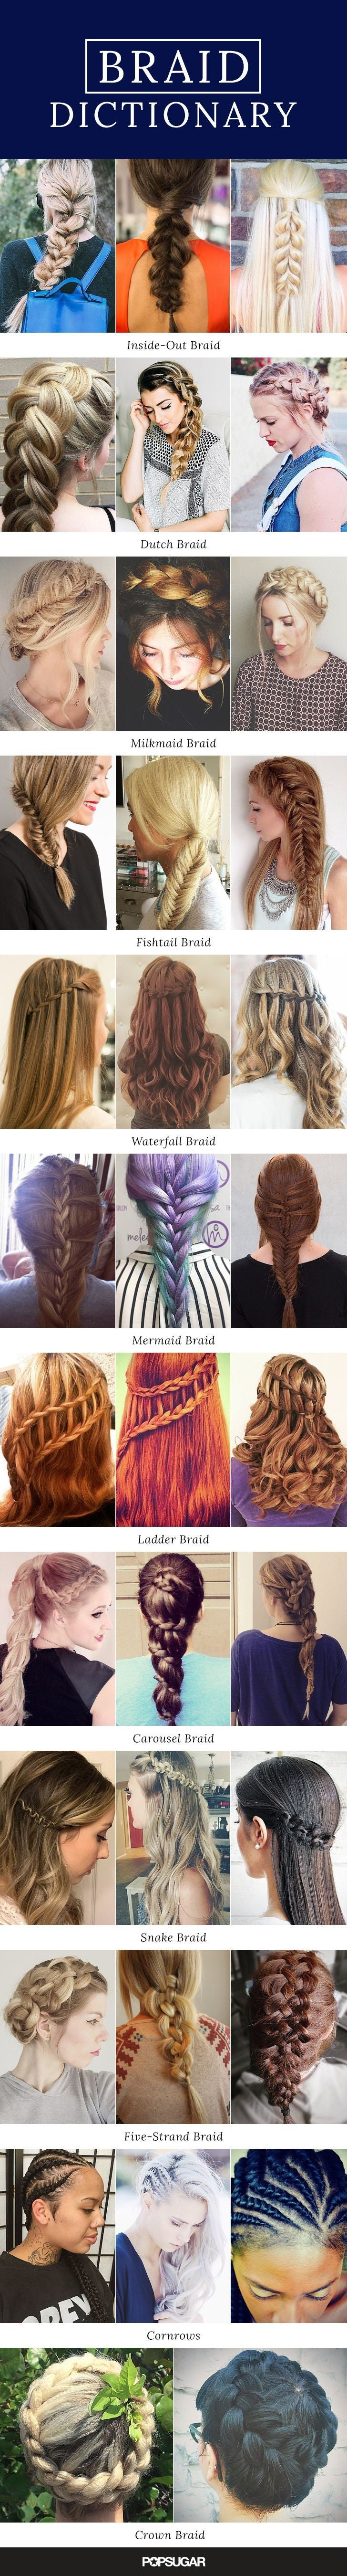 Braid Dictionary . Good for knowing what the styles are called. -